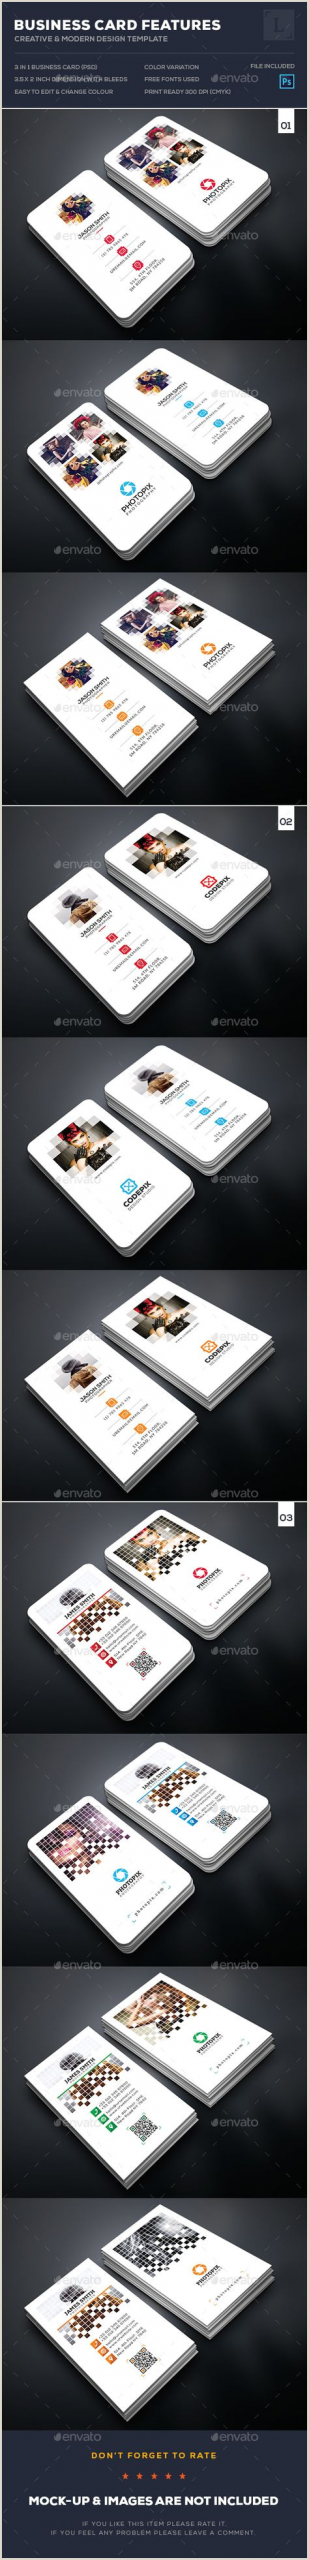 Top Best Business Cards 68 Ideas Photography Business Cards Ideas Simple